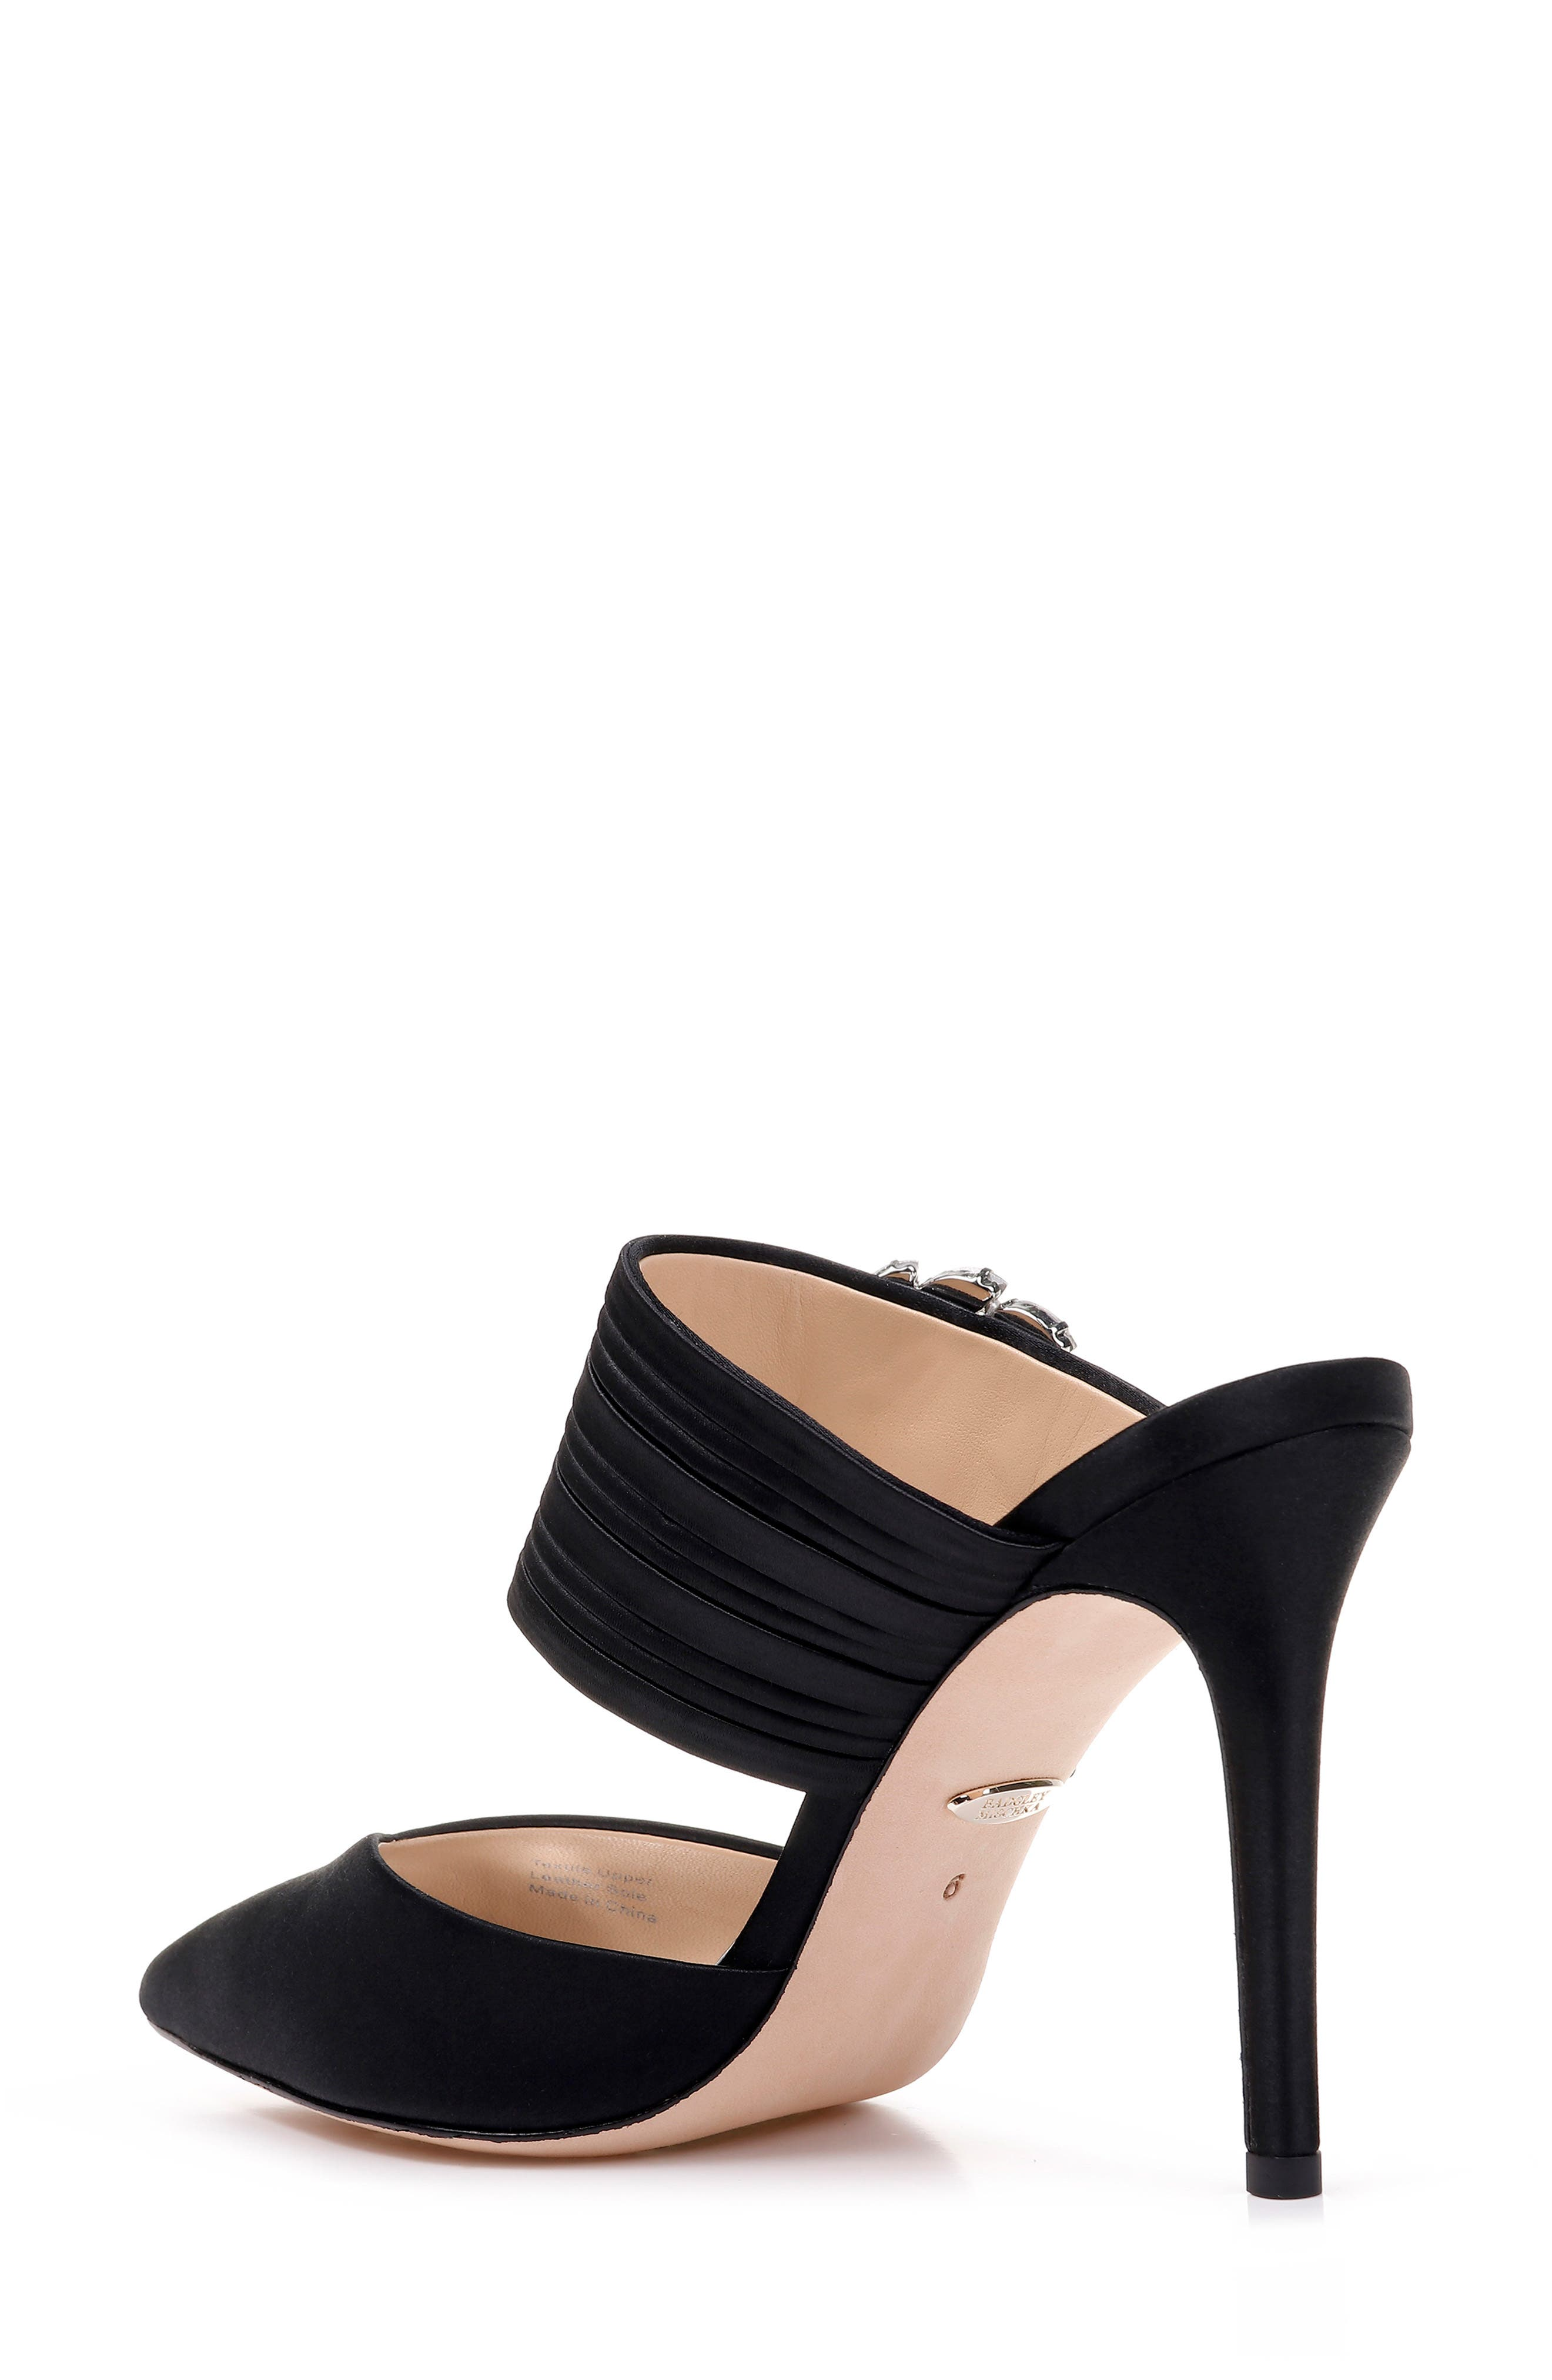 Badgley Mischka Crystal Buckle Mule,                             Alternate thumbnail 2, color,                             BLACK SATIN